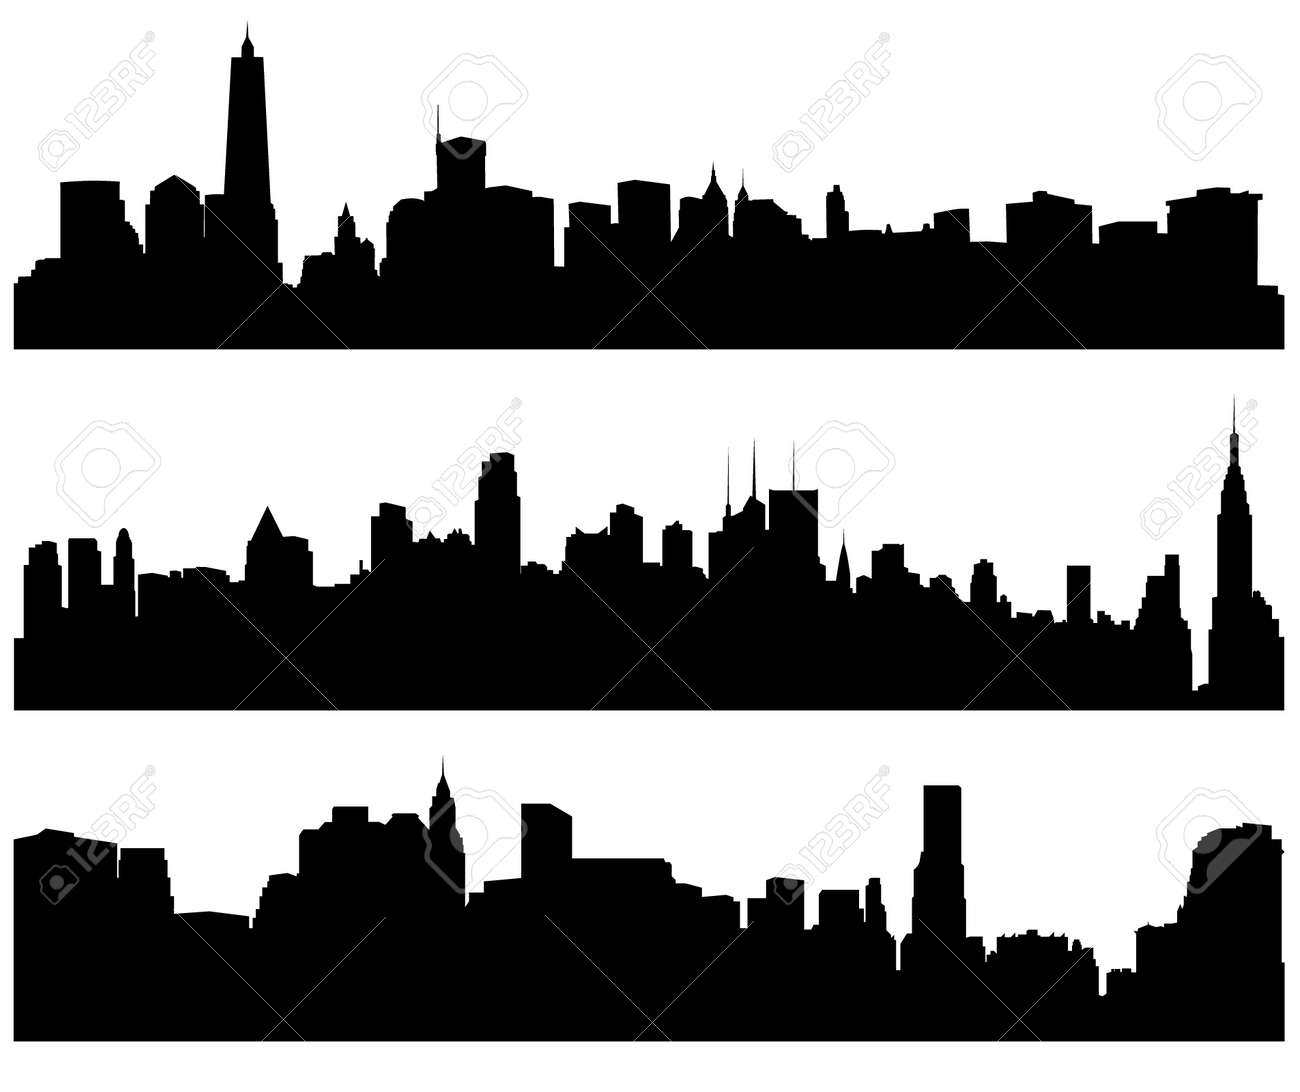 city skylines silhouette on white background royalty free cliparts